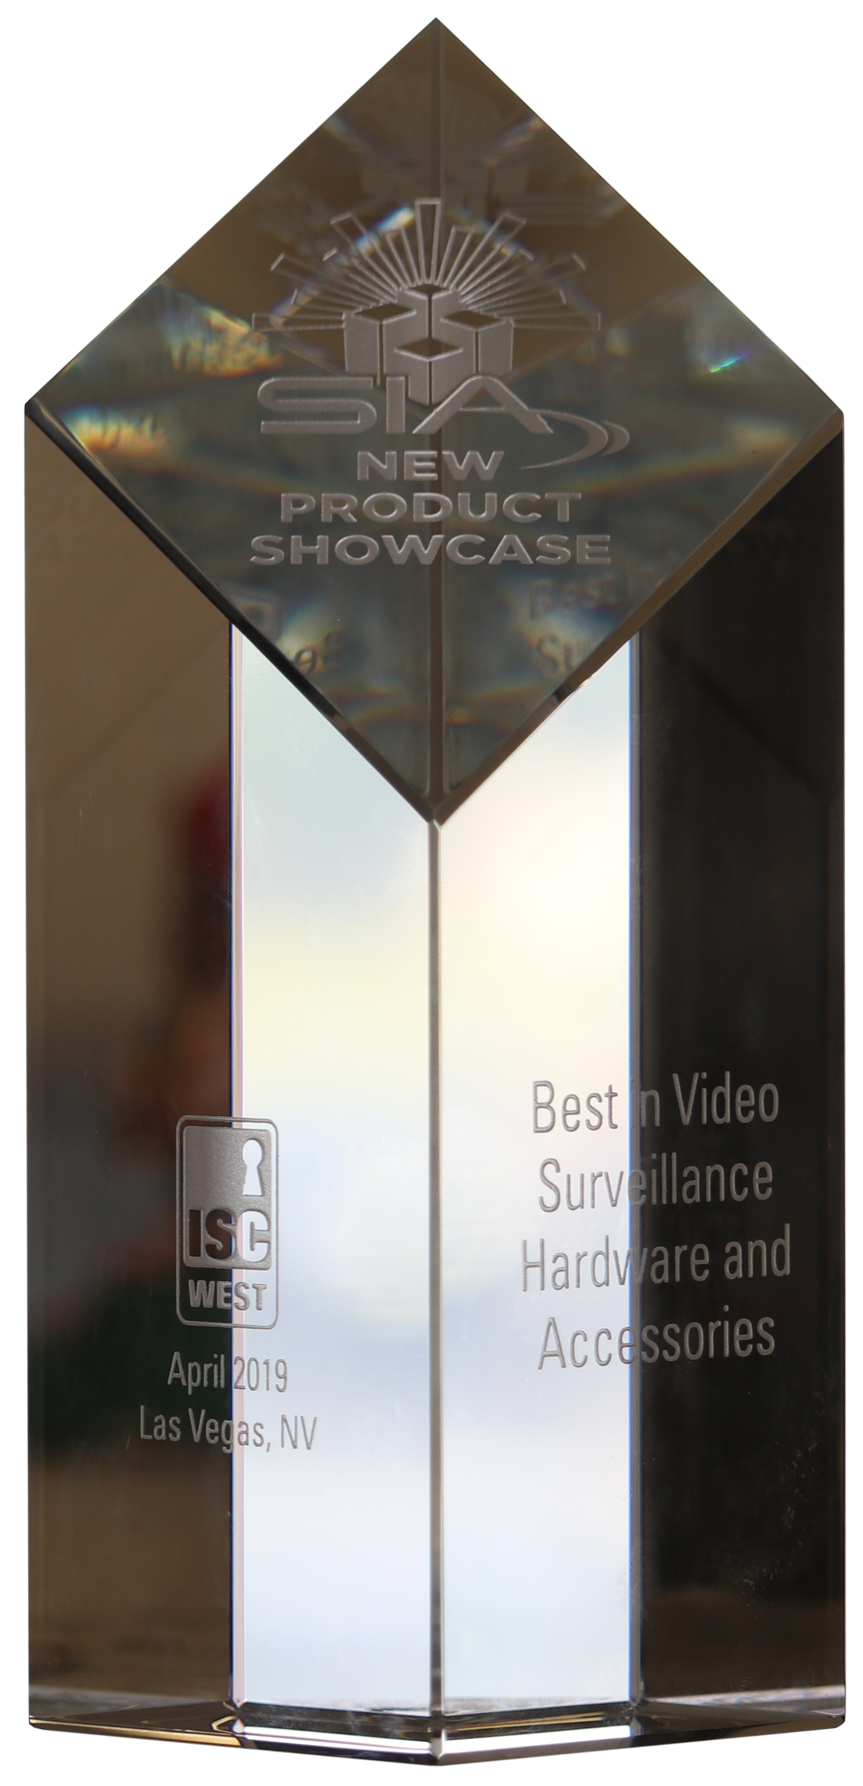 sia 2019 new product showcase aka nps crystal award best in video surveillance hardware and accessories front